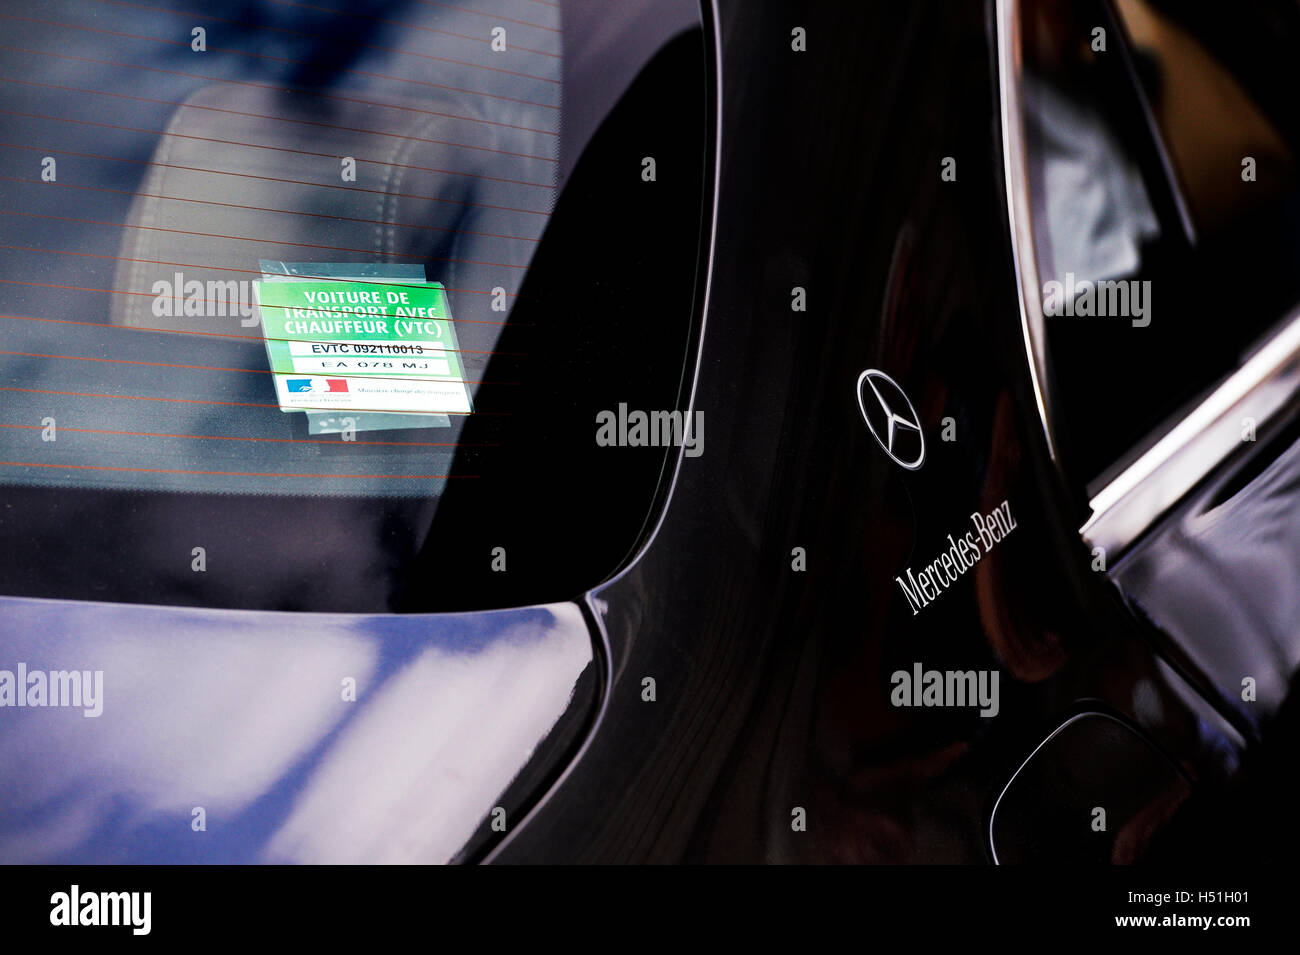 VTC driver licence in Paris, France - Stock Image